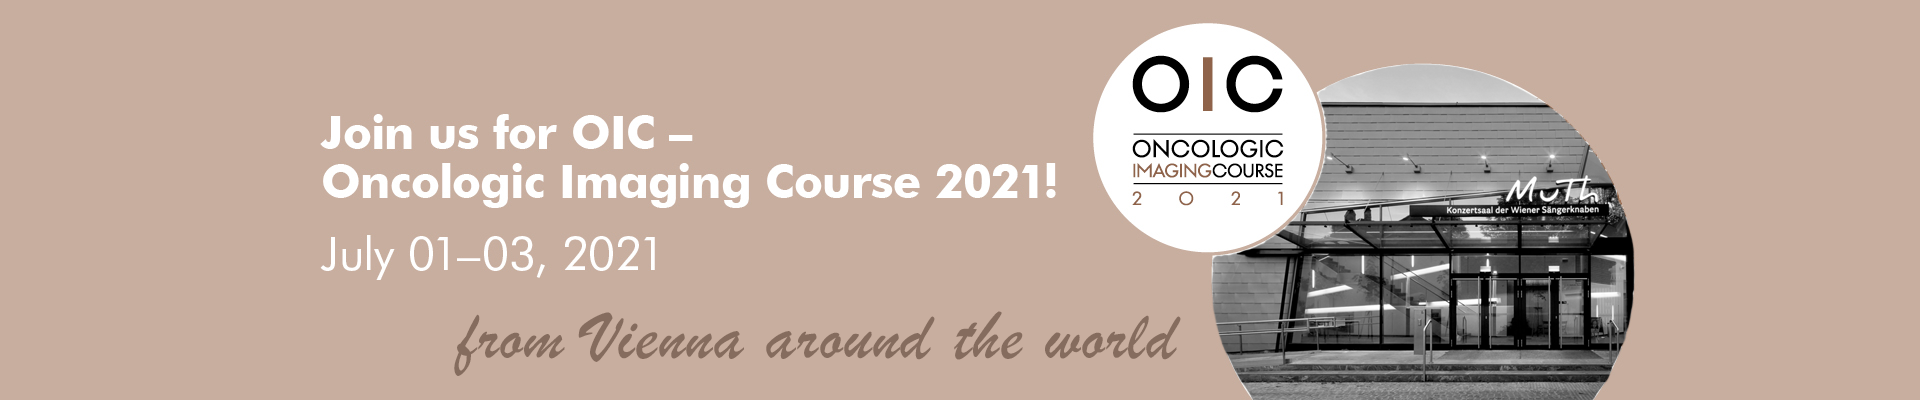 OIC - Oncologic Imaging Course 2021